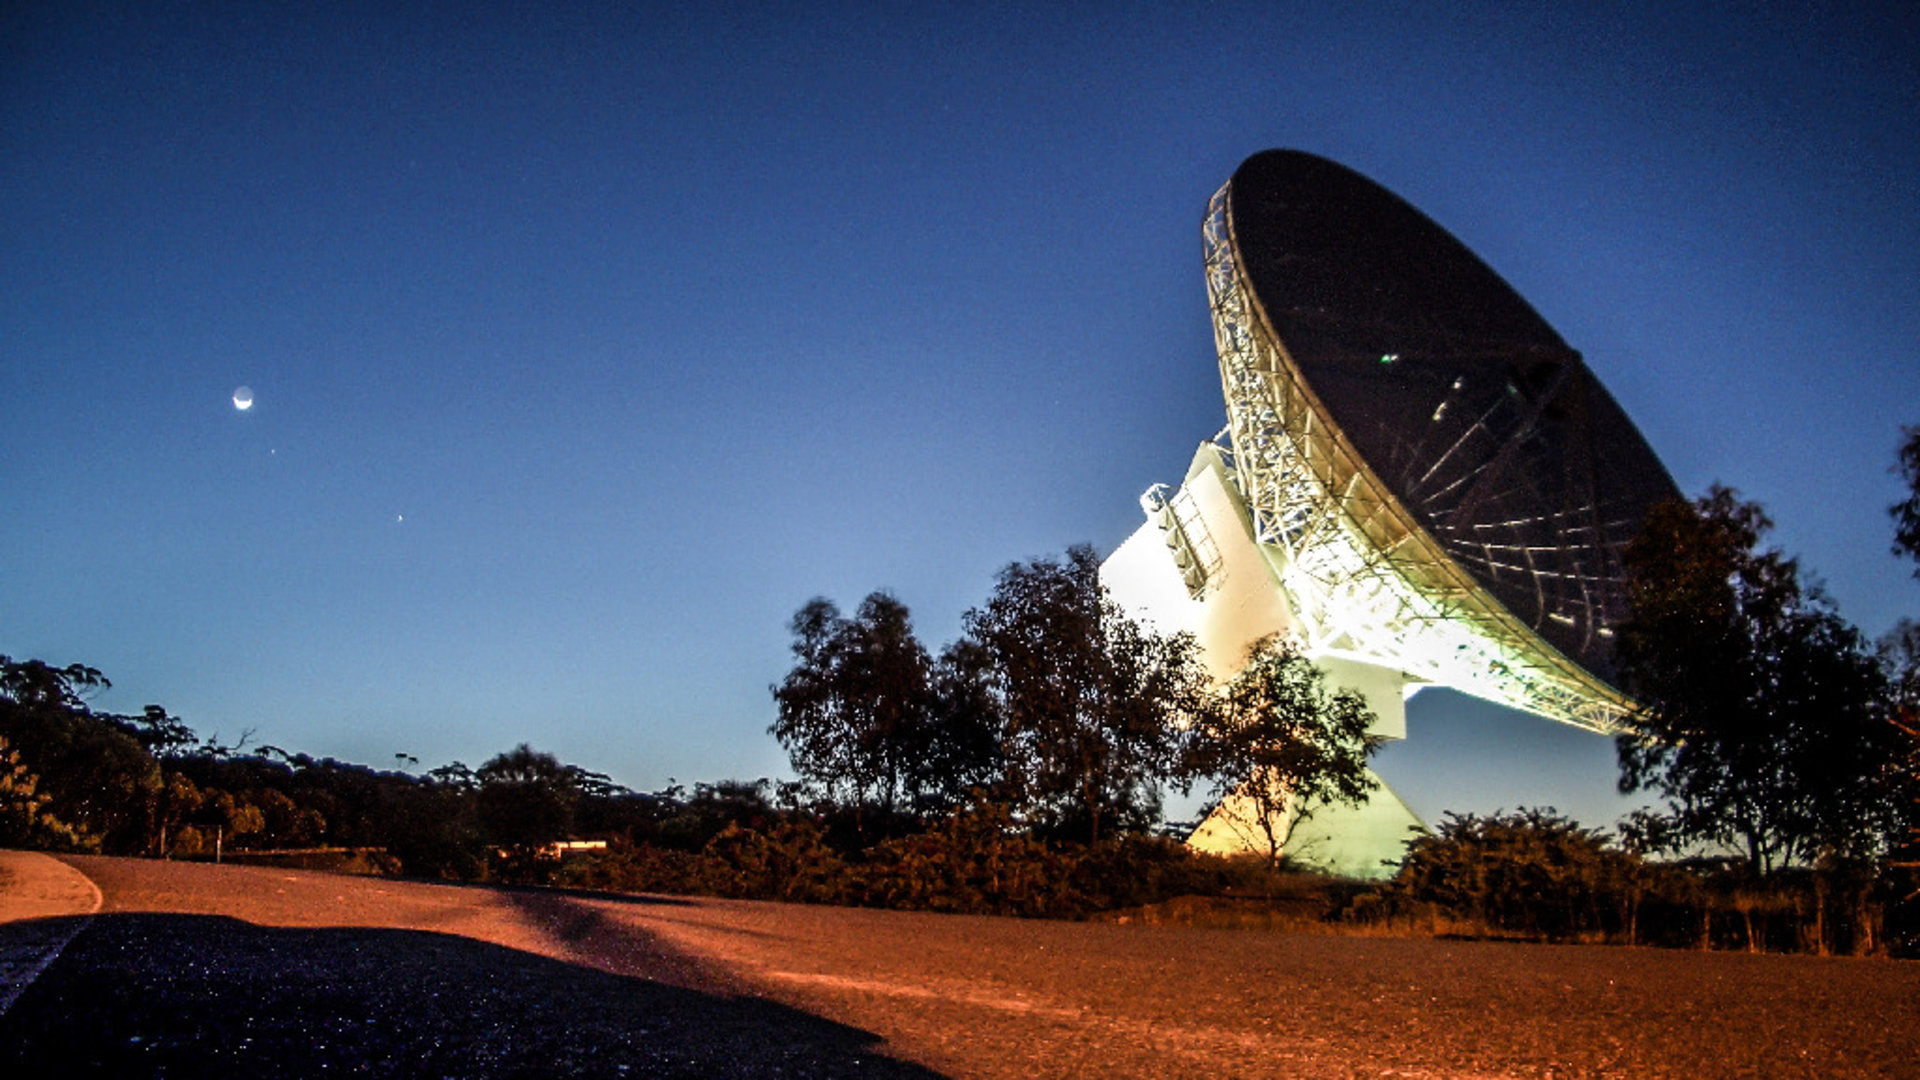 Estrack ground stations / Estrack / Operations / Our